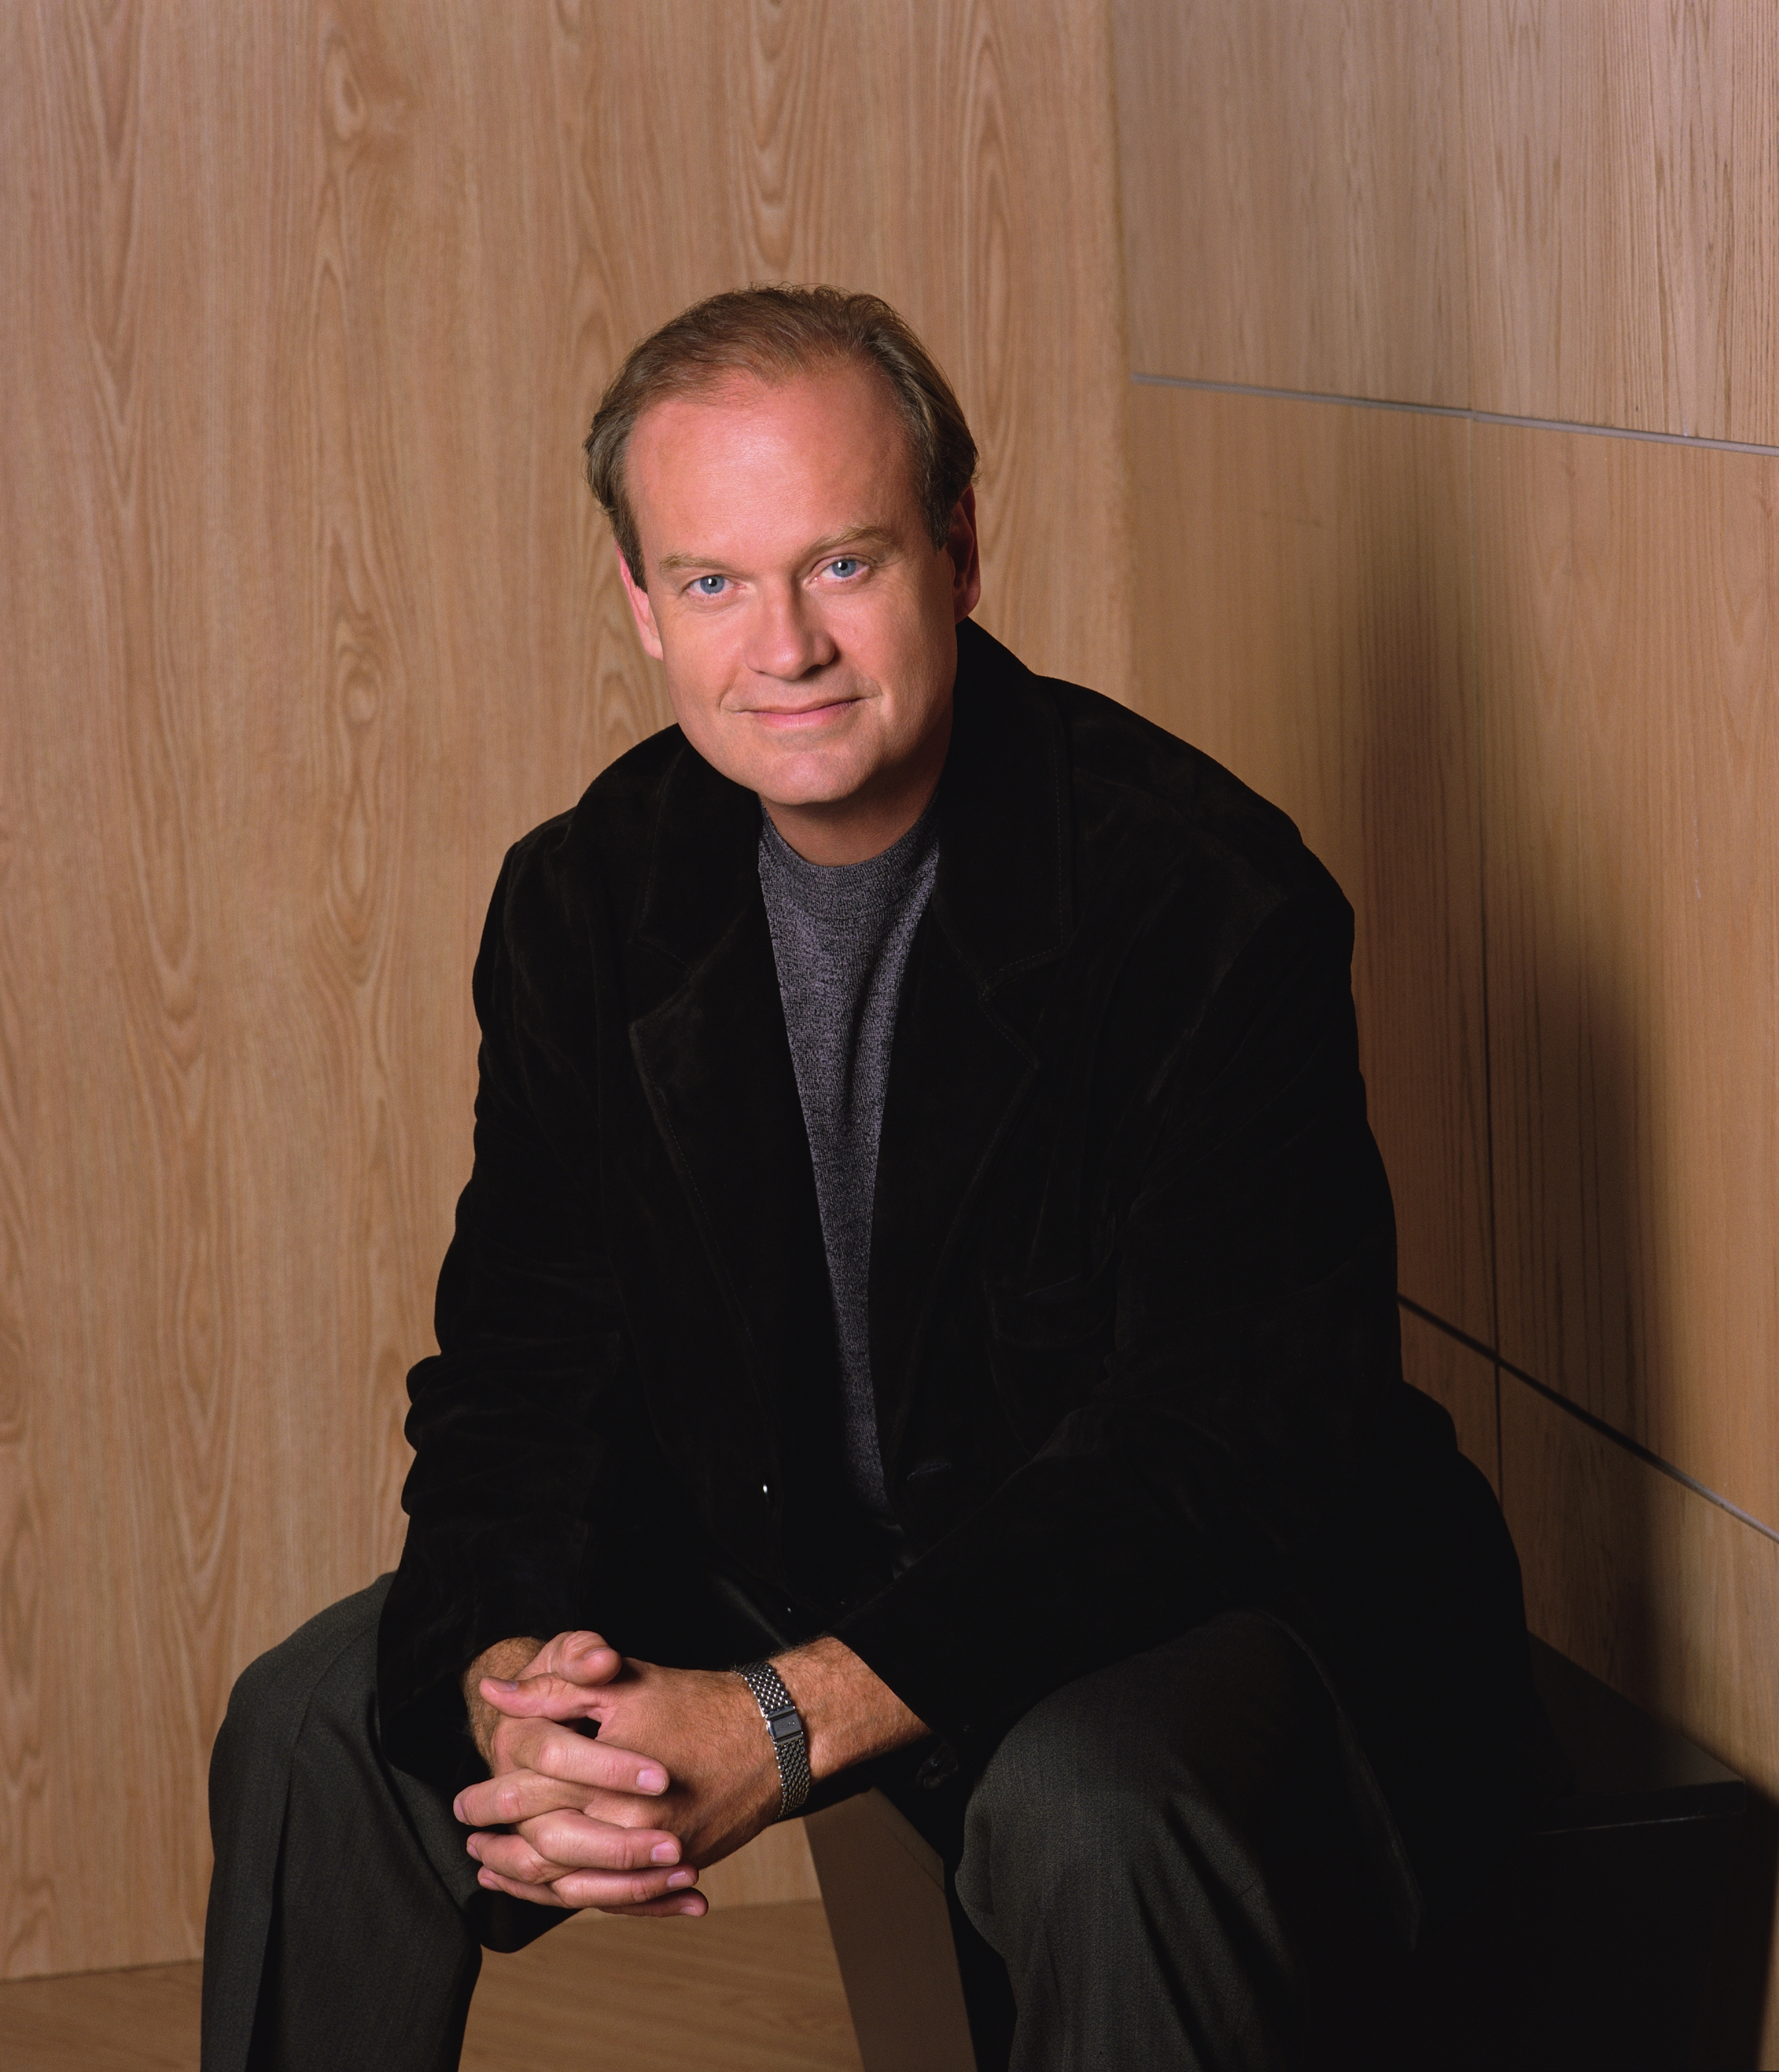 Kelsey grammer to make london stage debut in big fish the for Big fish musical script